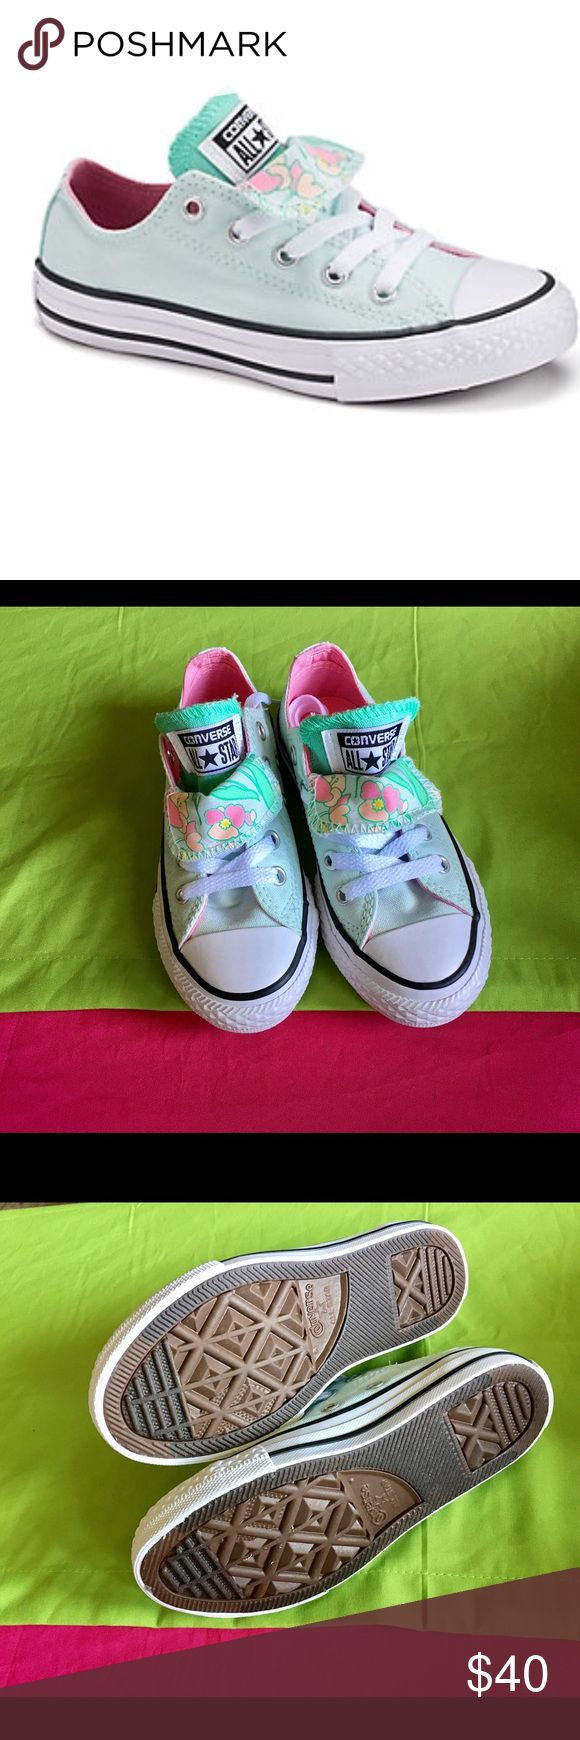 "All-Star Converse for girls!! Converse Chuck Taylor All-Star floral double tongue shoes, size girls 11, color mint, pink, orange, ""brand new"" Converse Shoes Sneakers"